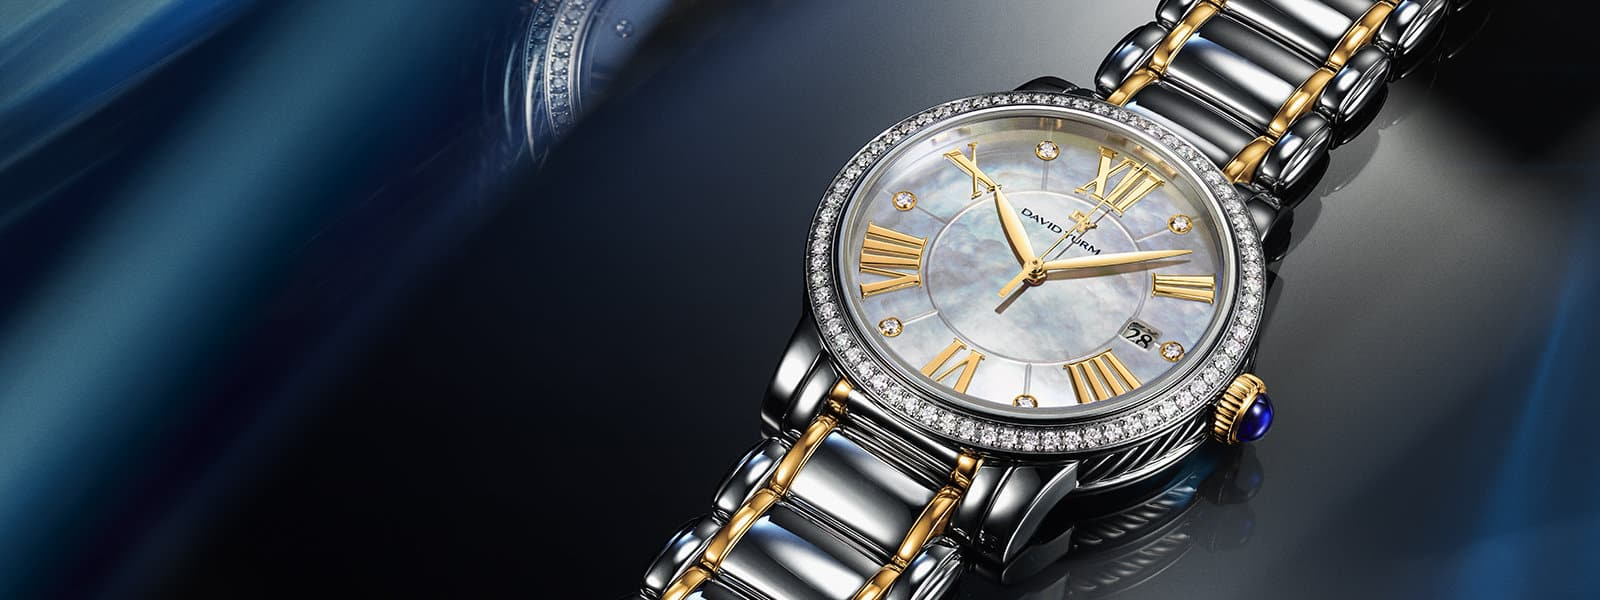 A color photograph shows a close-up of a David Yurman women's watch atop a reflective background with angular, multi-colored reflections of light and jewelry. The watch is crafted from stainless steel with 18K yellow gold accents on the face and bracelet and pavé white diamonds.